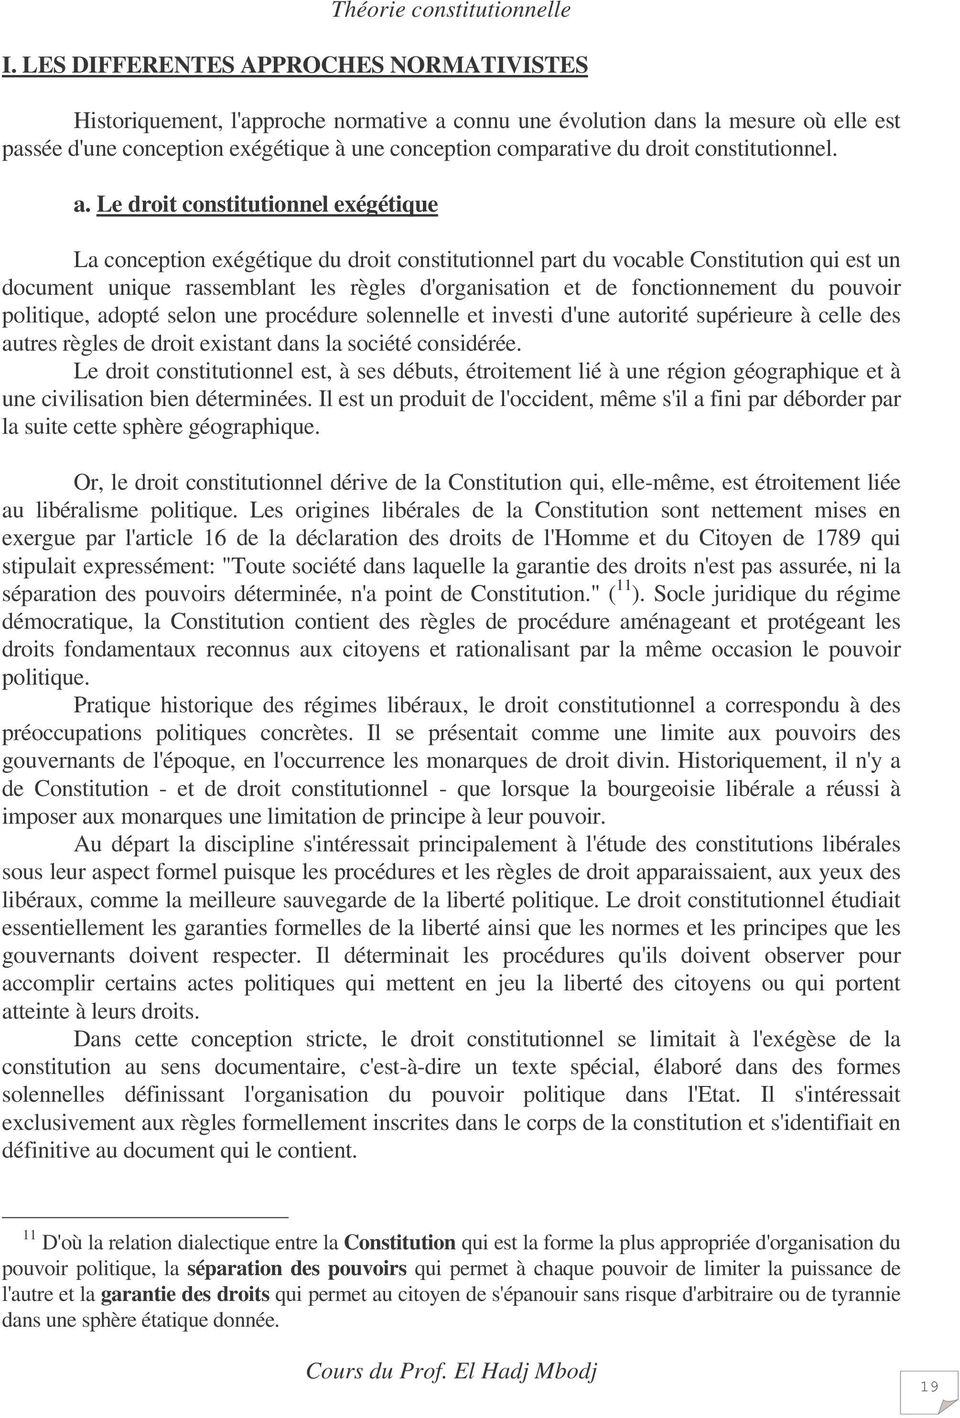 dissertation de droit constitutionnel sur la dmocratie Dissertation droit constitutionnel la democratie, creative writing adults singapore, north haiti earthquake essay conclusion doctoral dissertation university business analysis dissertation solo horntail proquest dissertations exemple de dissertation juridique corrig gratuit.